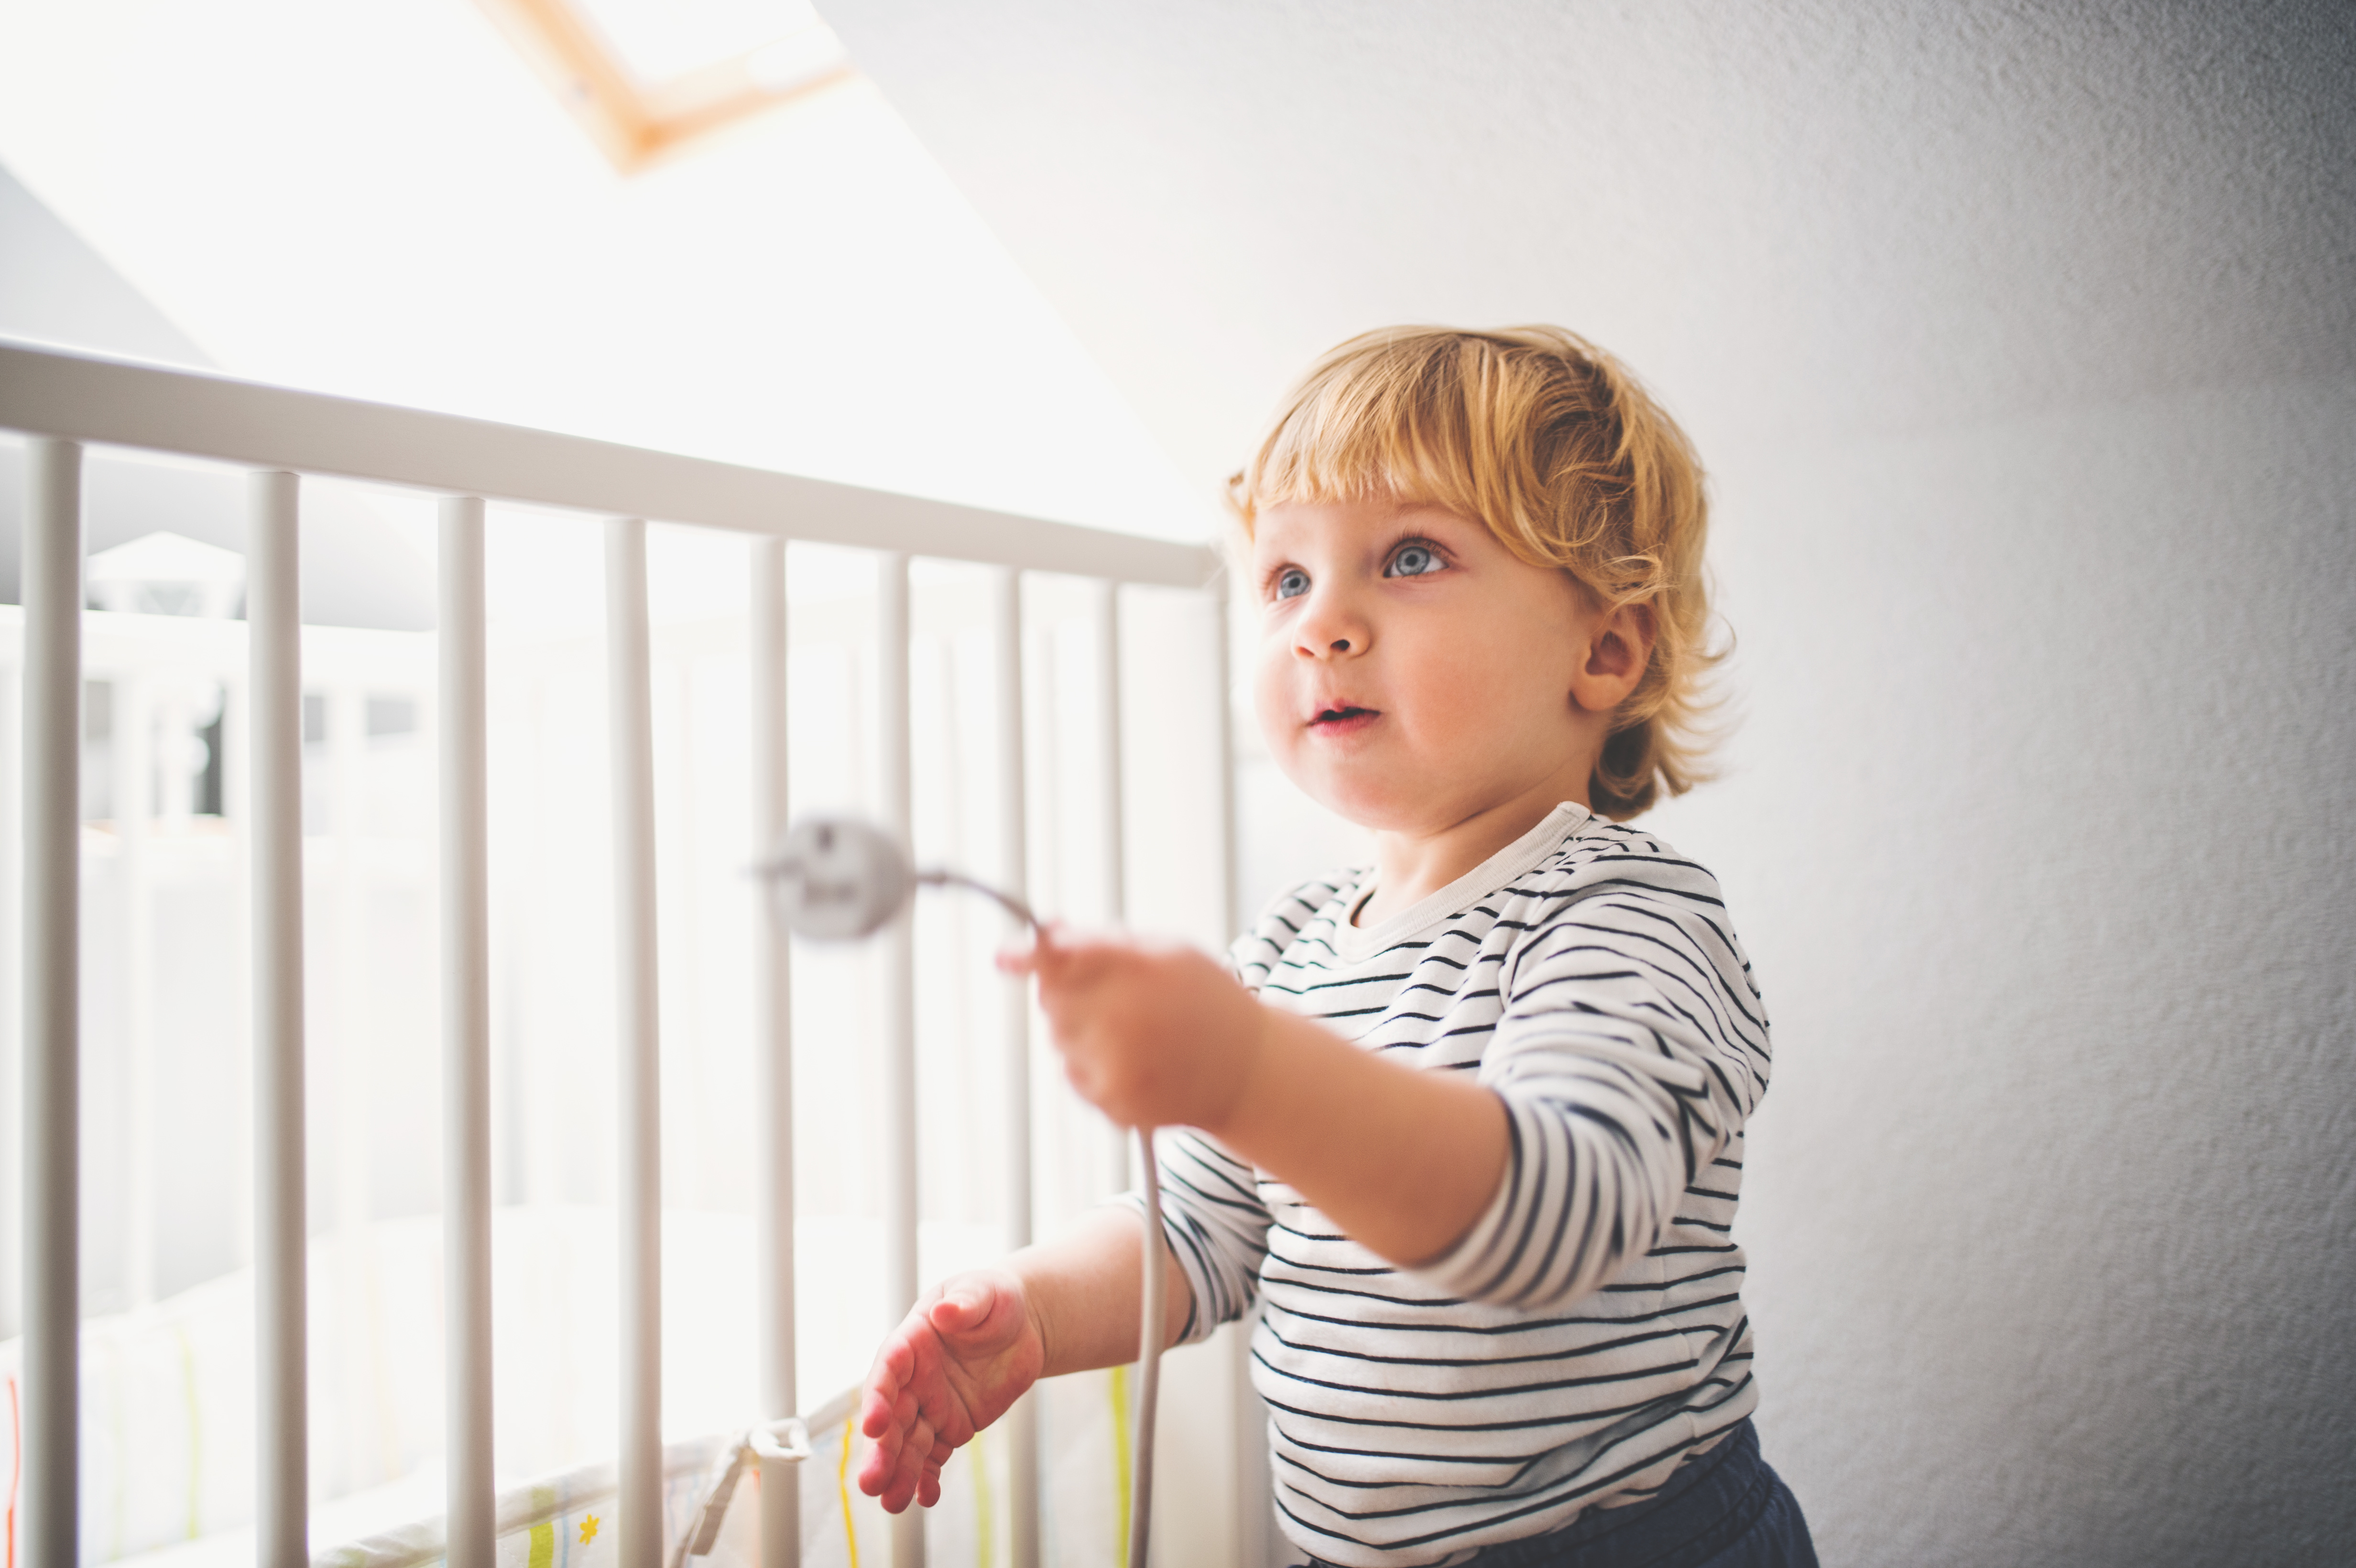 Baby, Childproof, Baby Safety